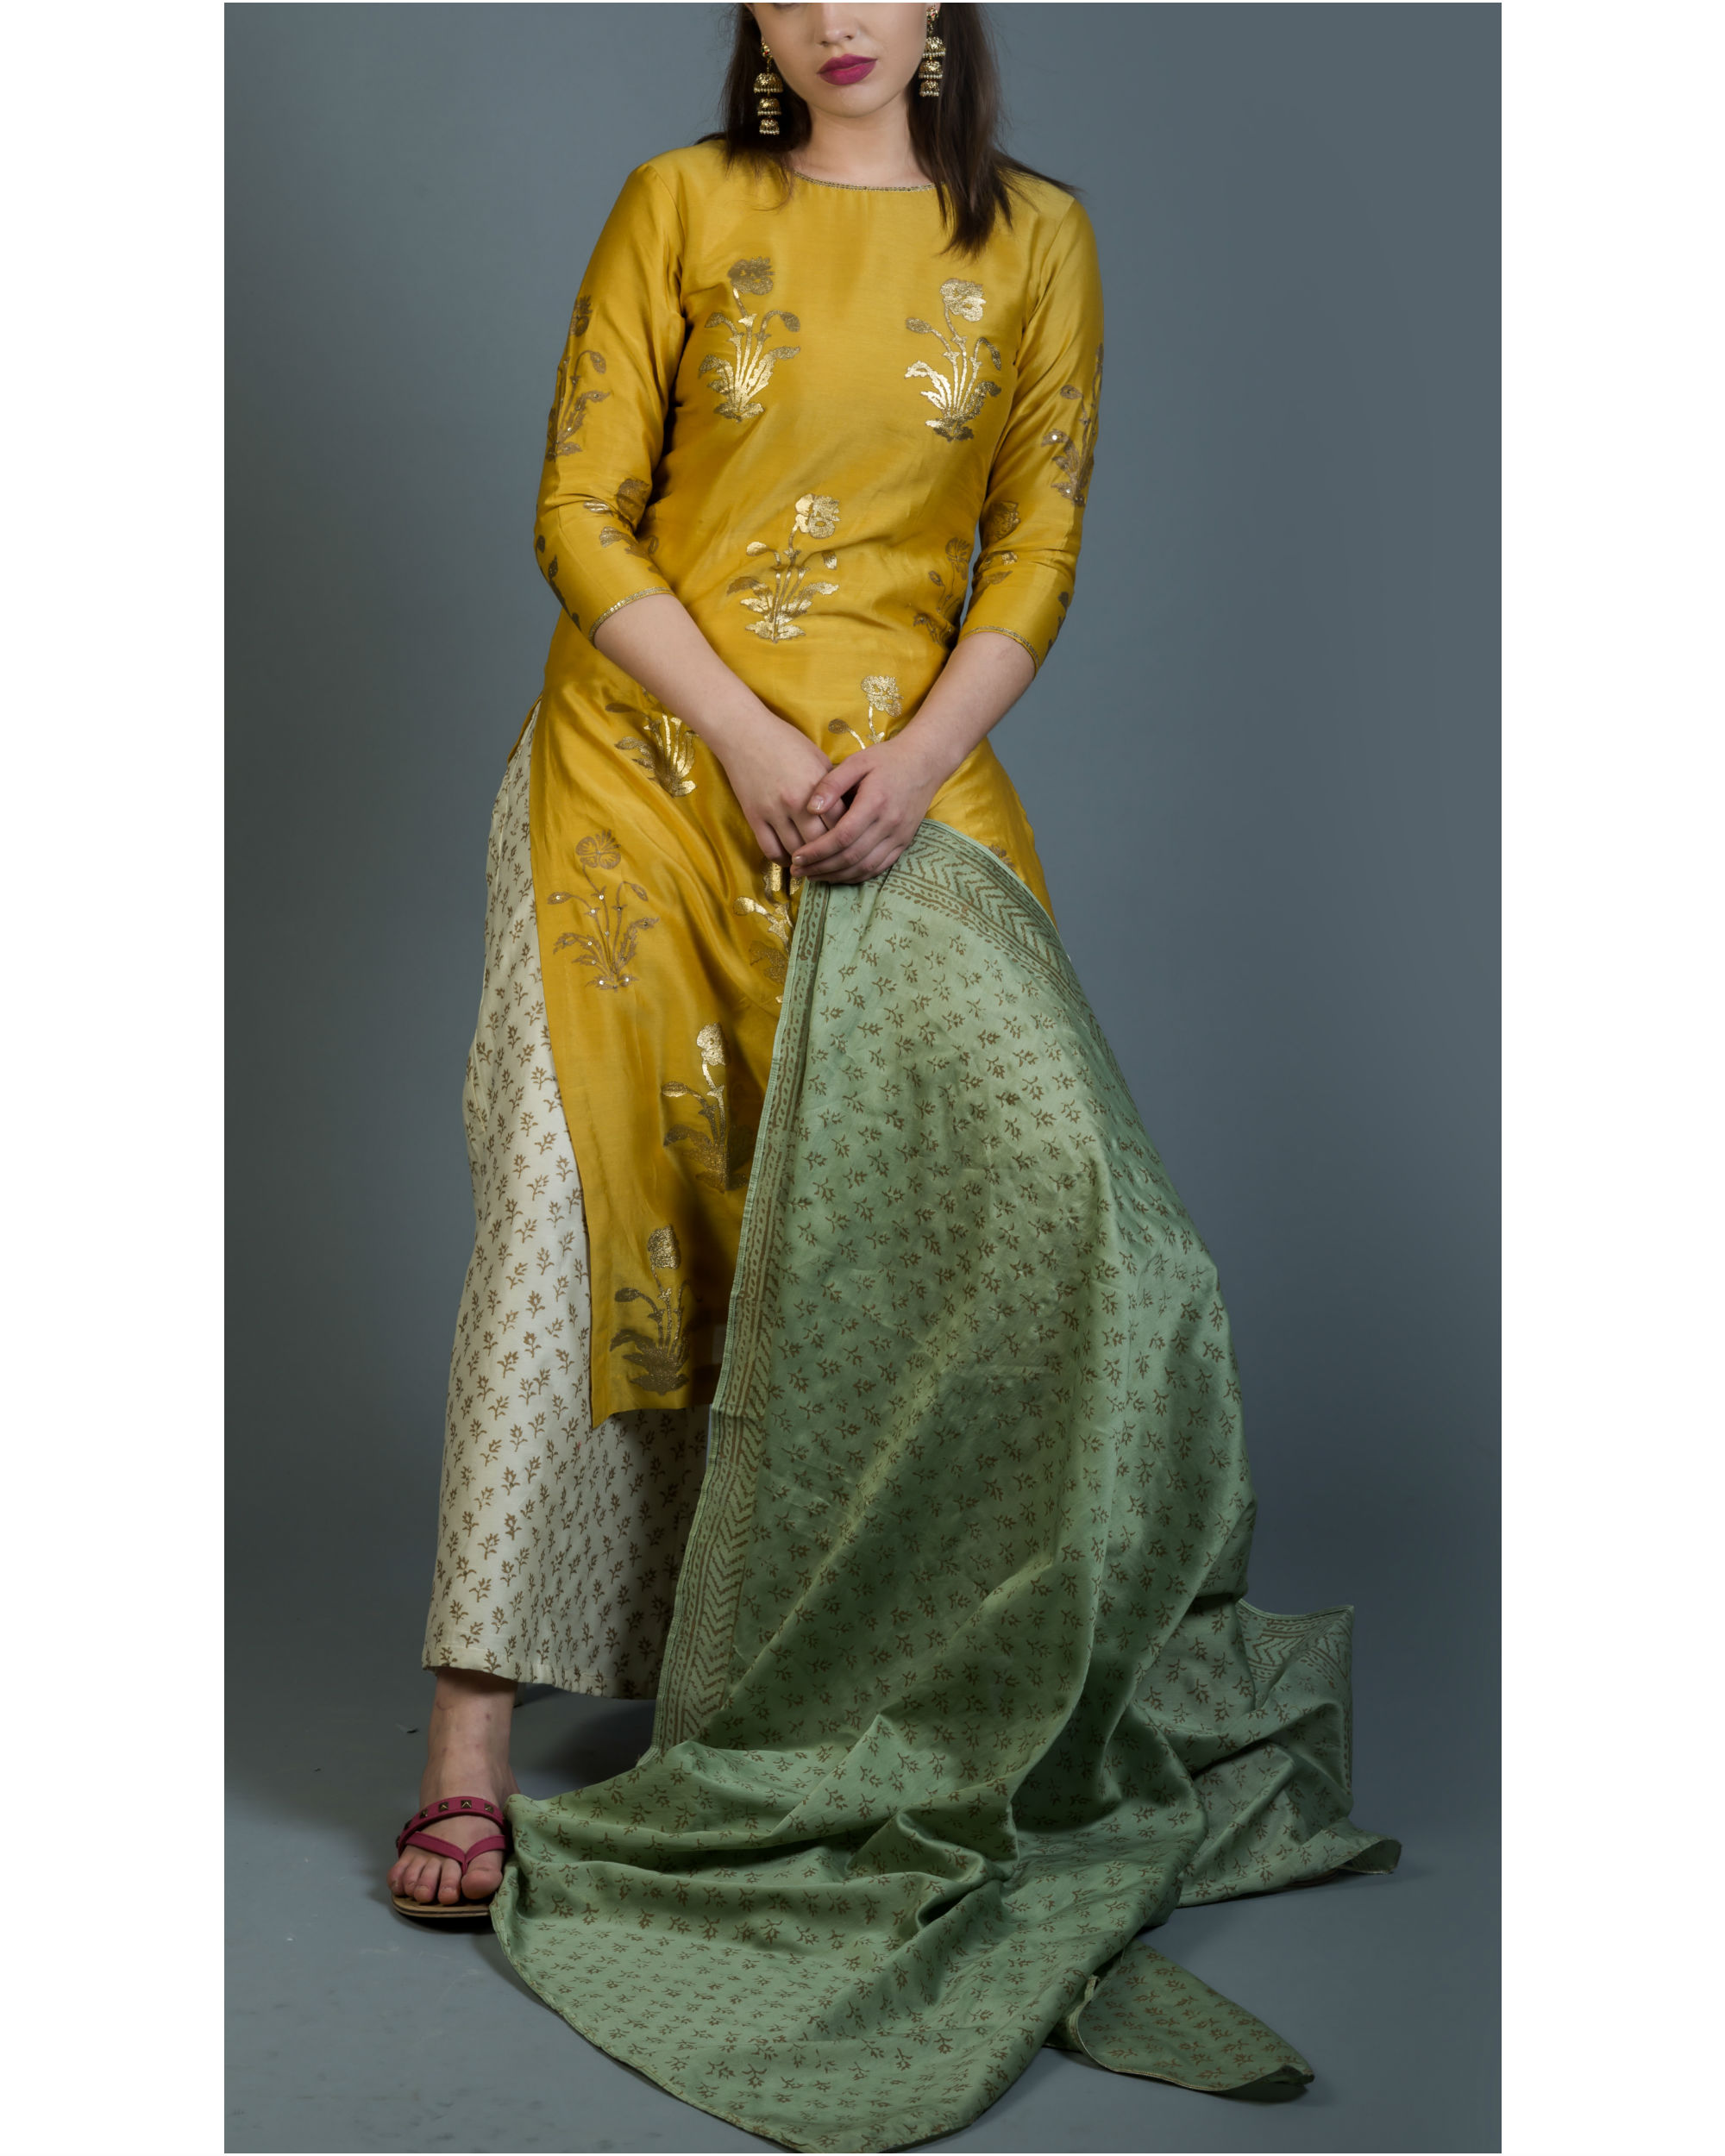 Genda phool kurta set with green dupatta